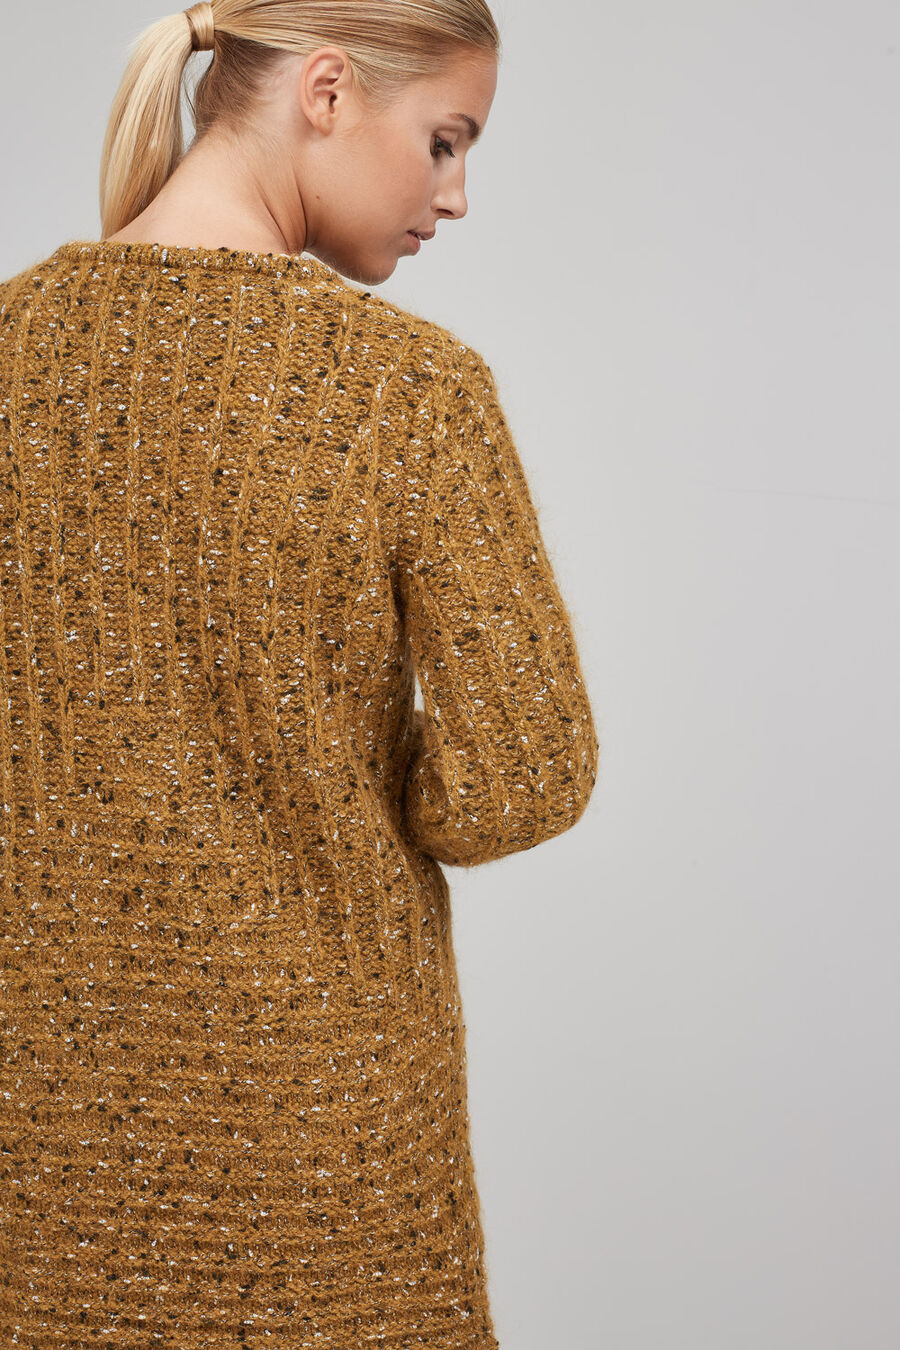 Fancy mustard cardigan